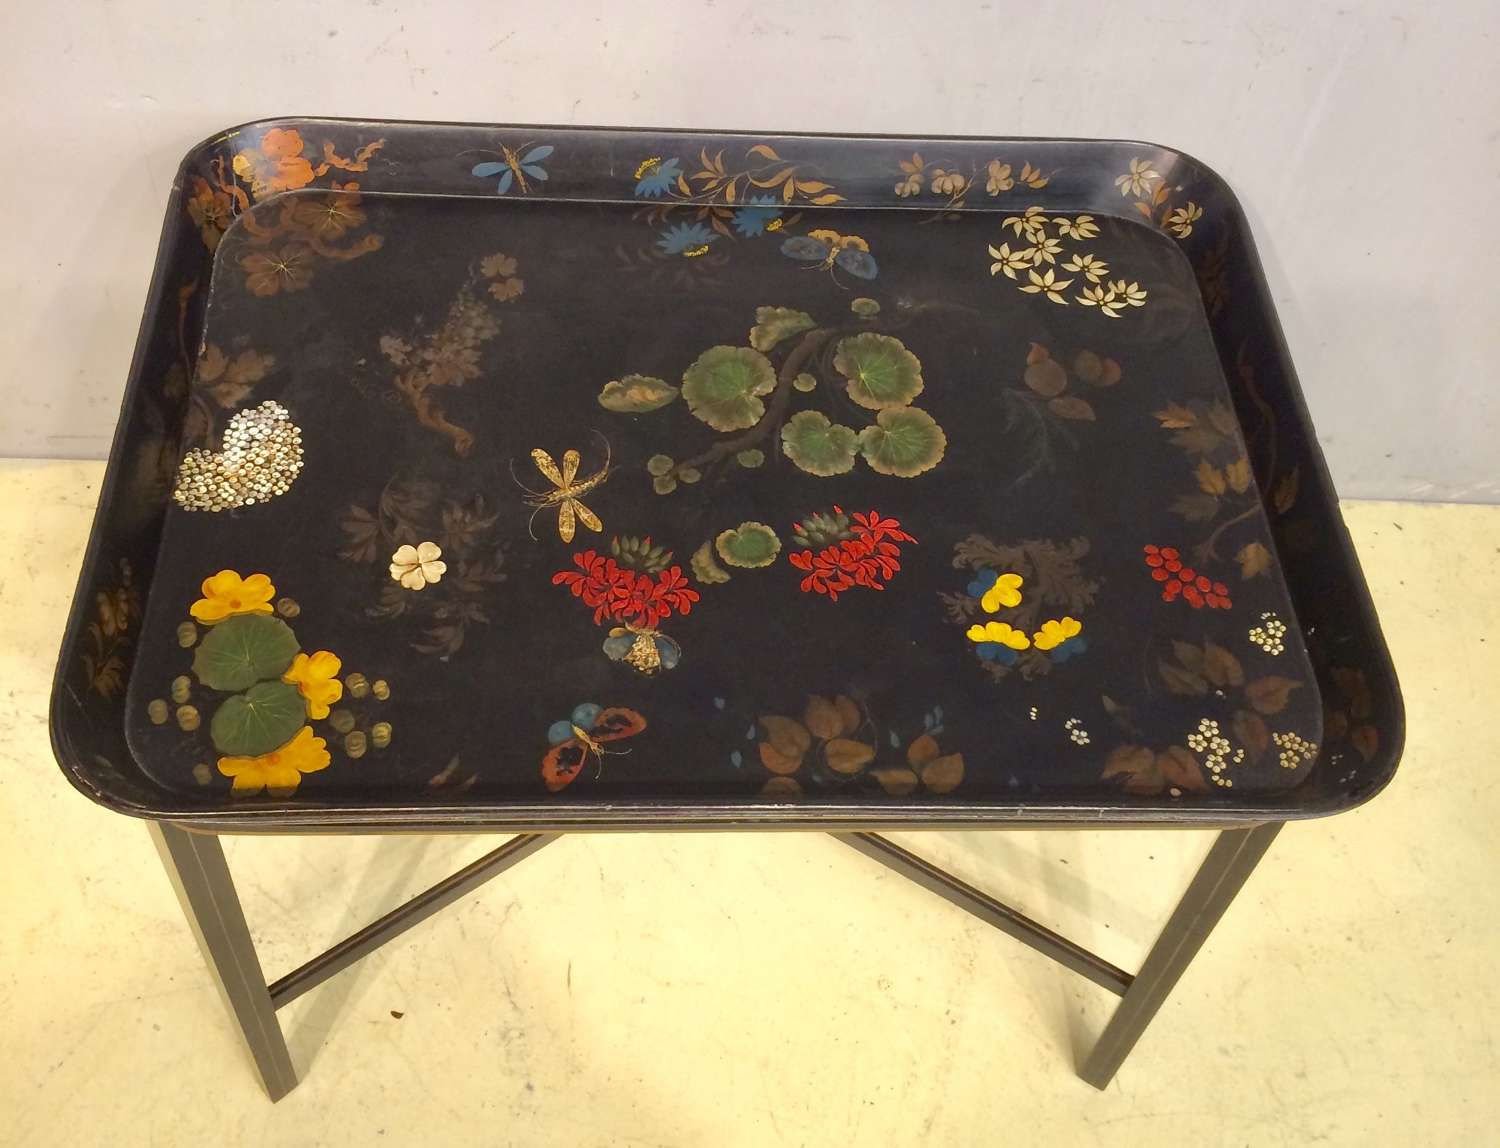 19th century papier mache tray on stand.